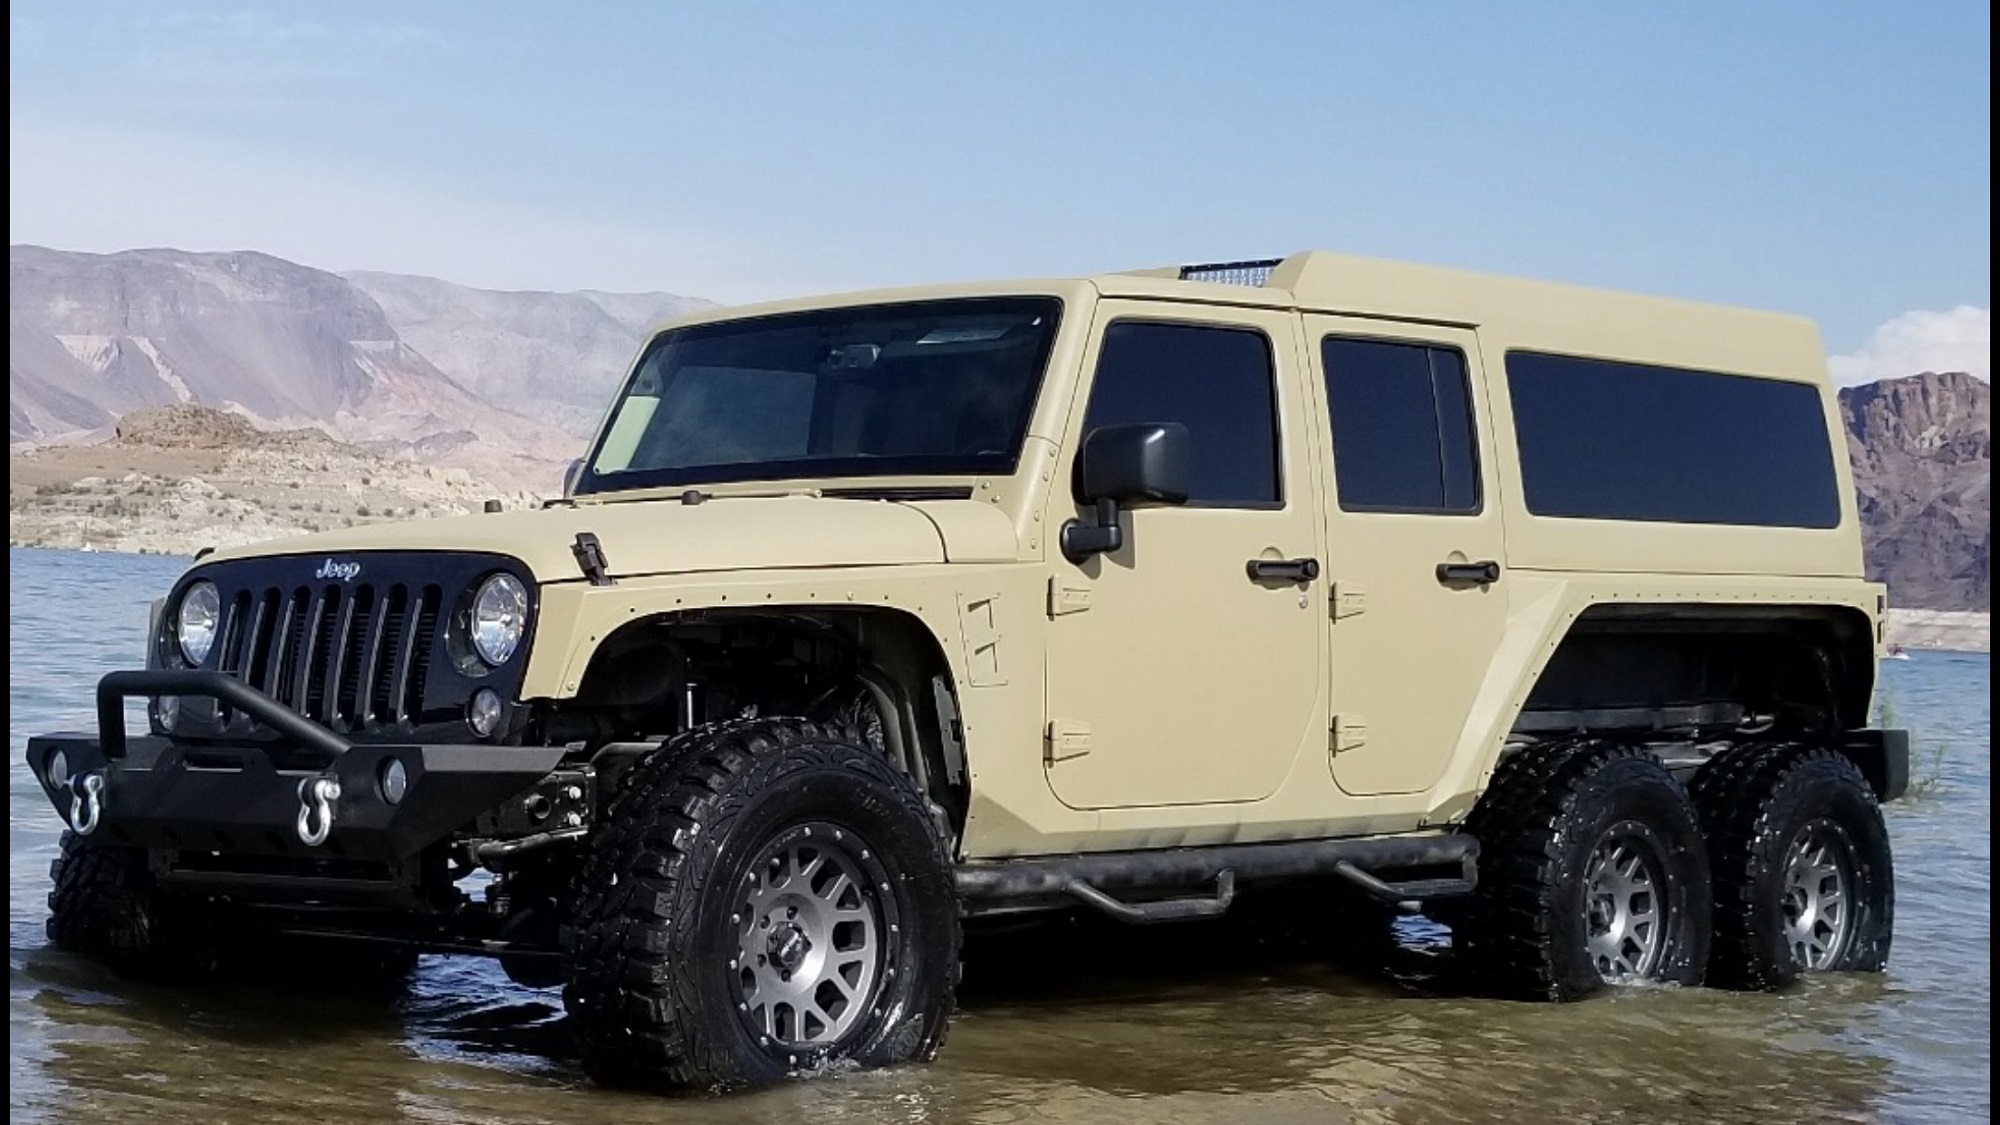 About – 6×6 Jeep – 6 wheel drive jeep